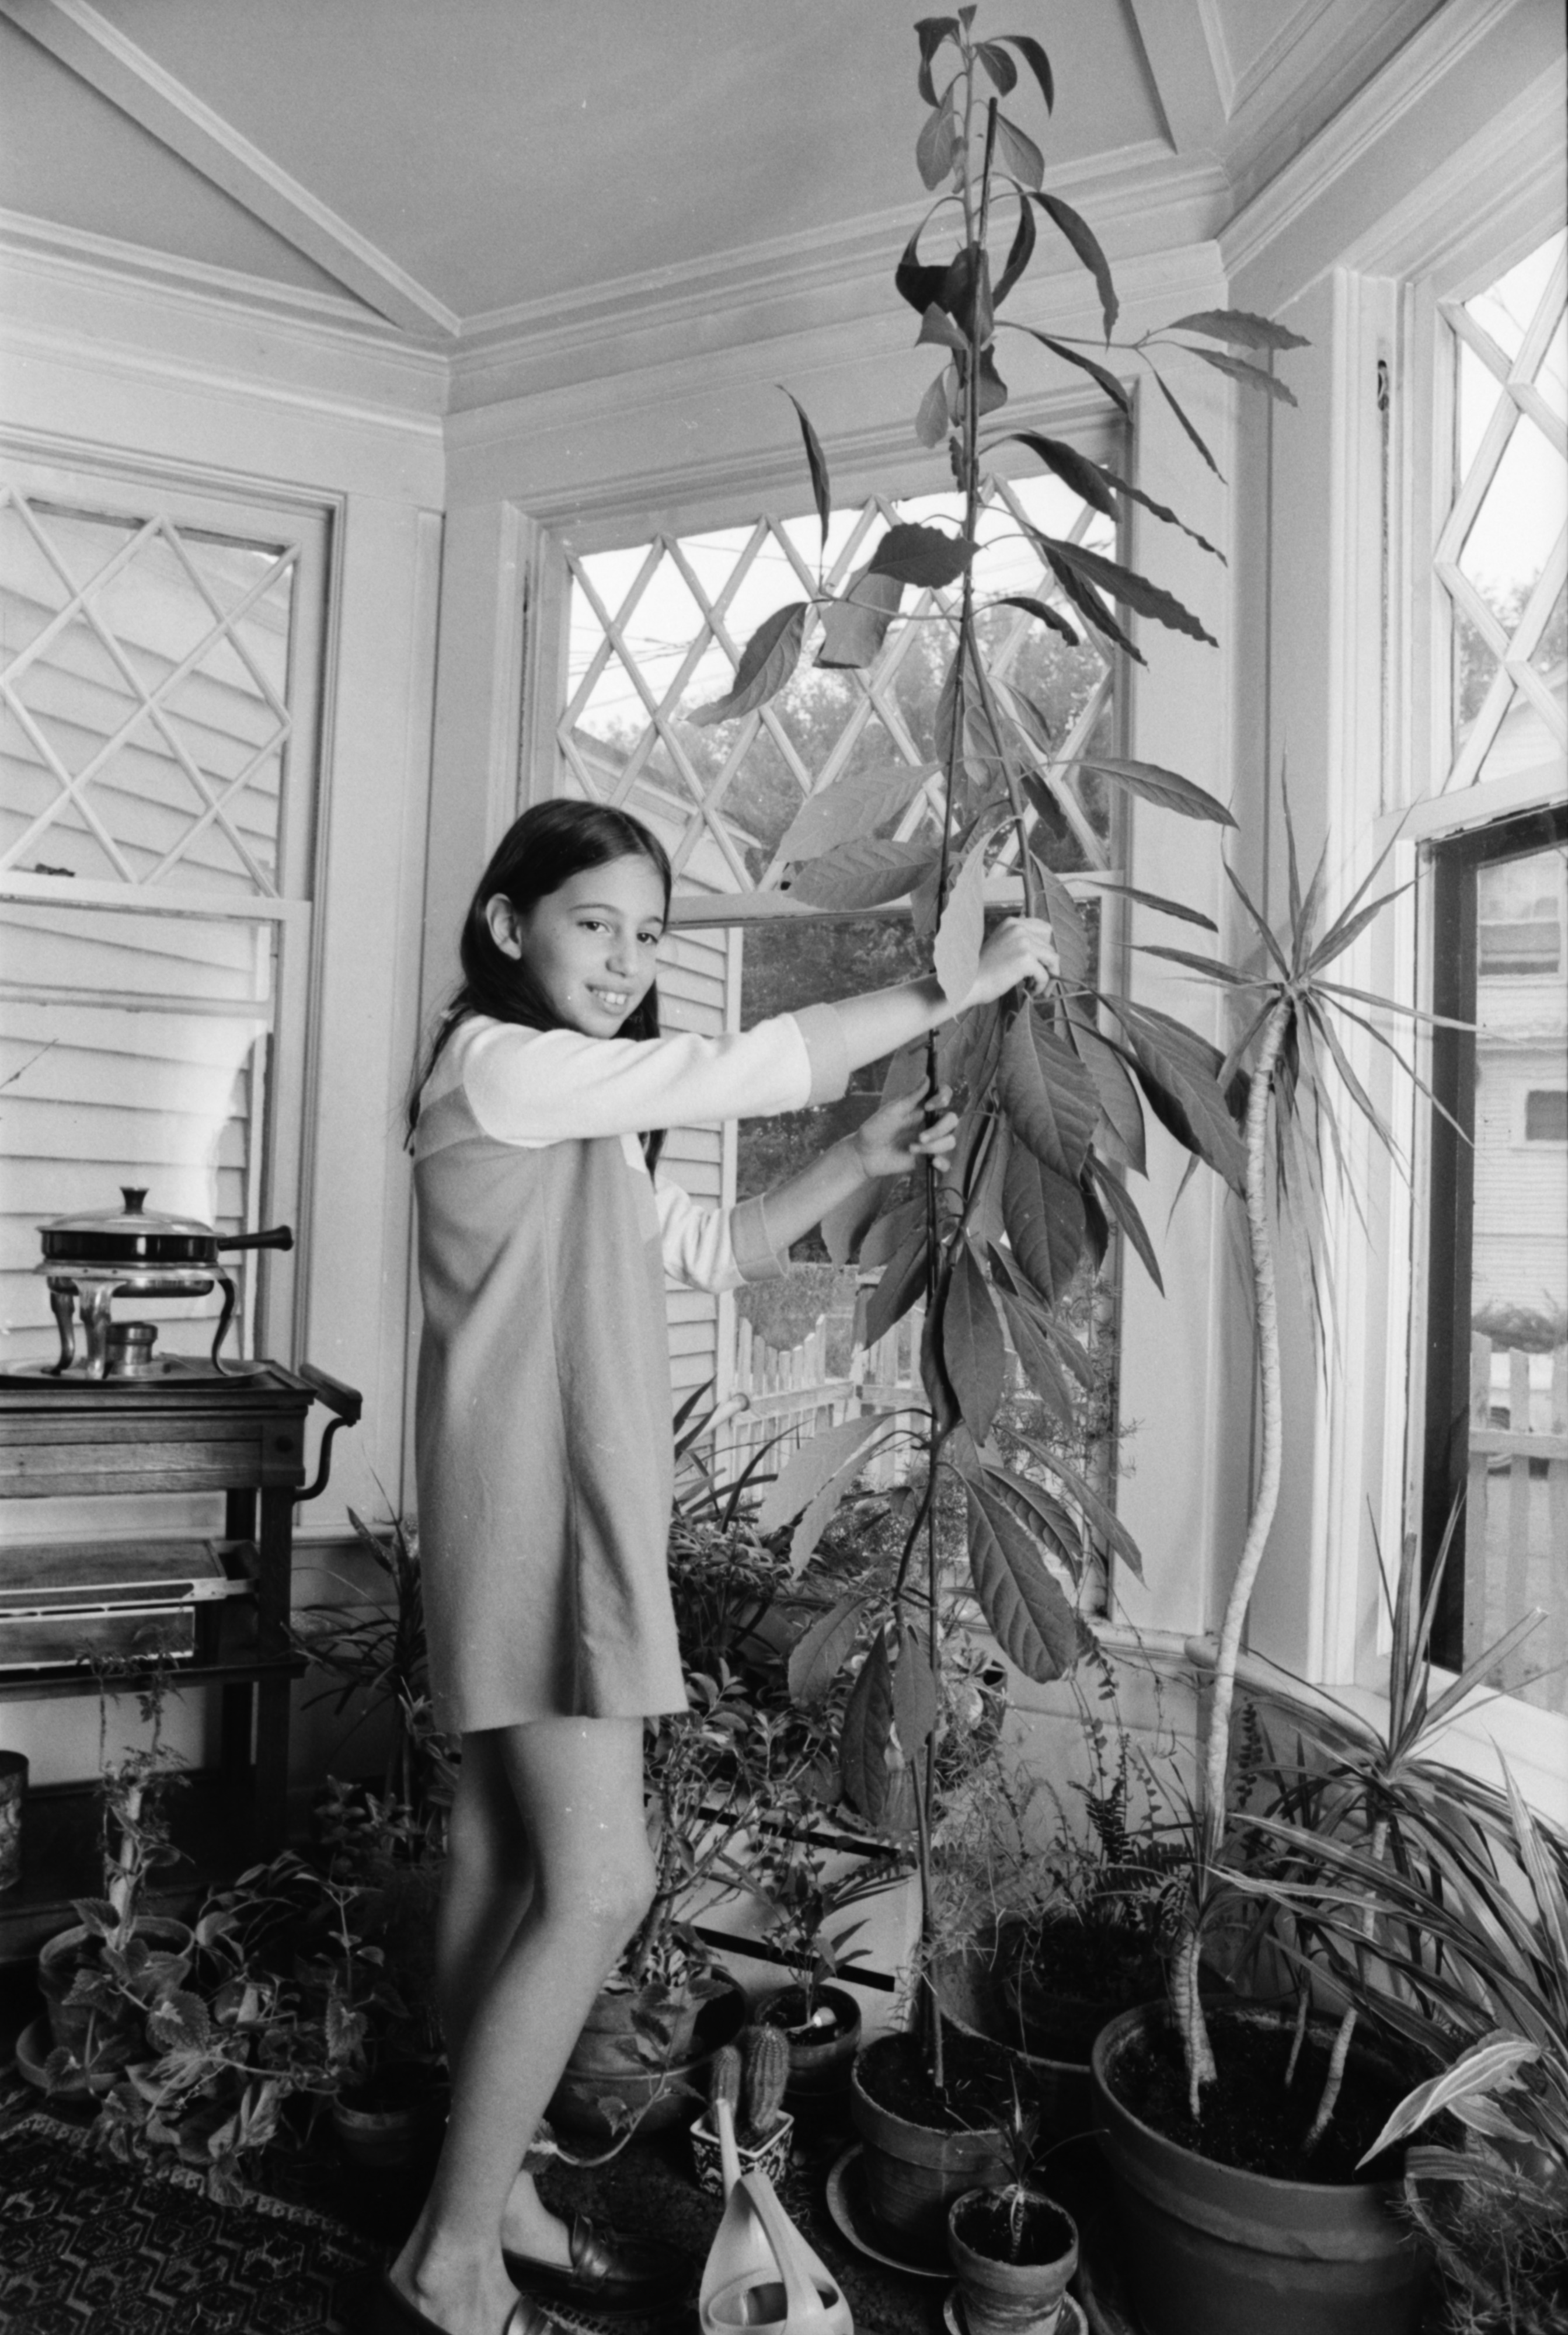 Melissa Berlin Grows Avocado Plant From Seed, October 1969 image